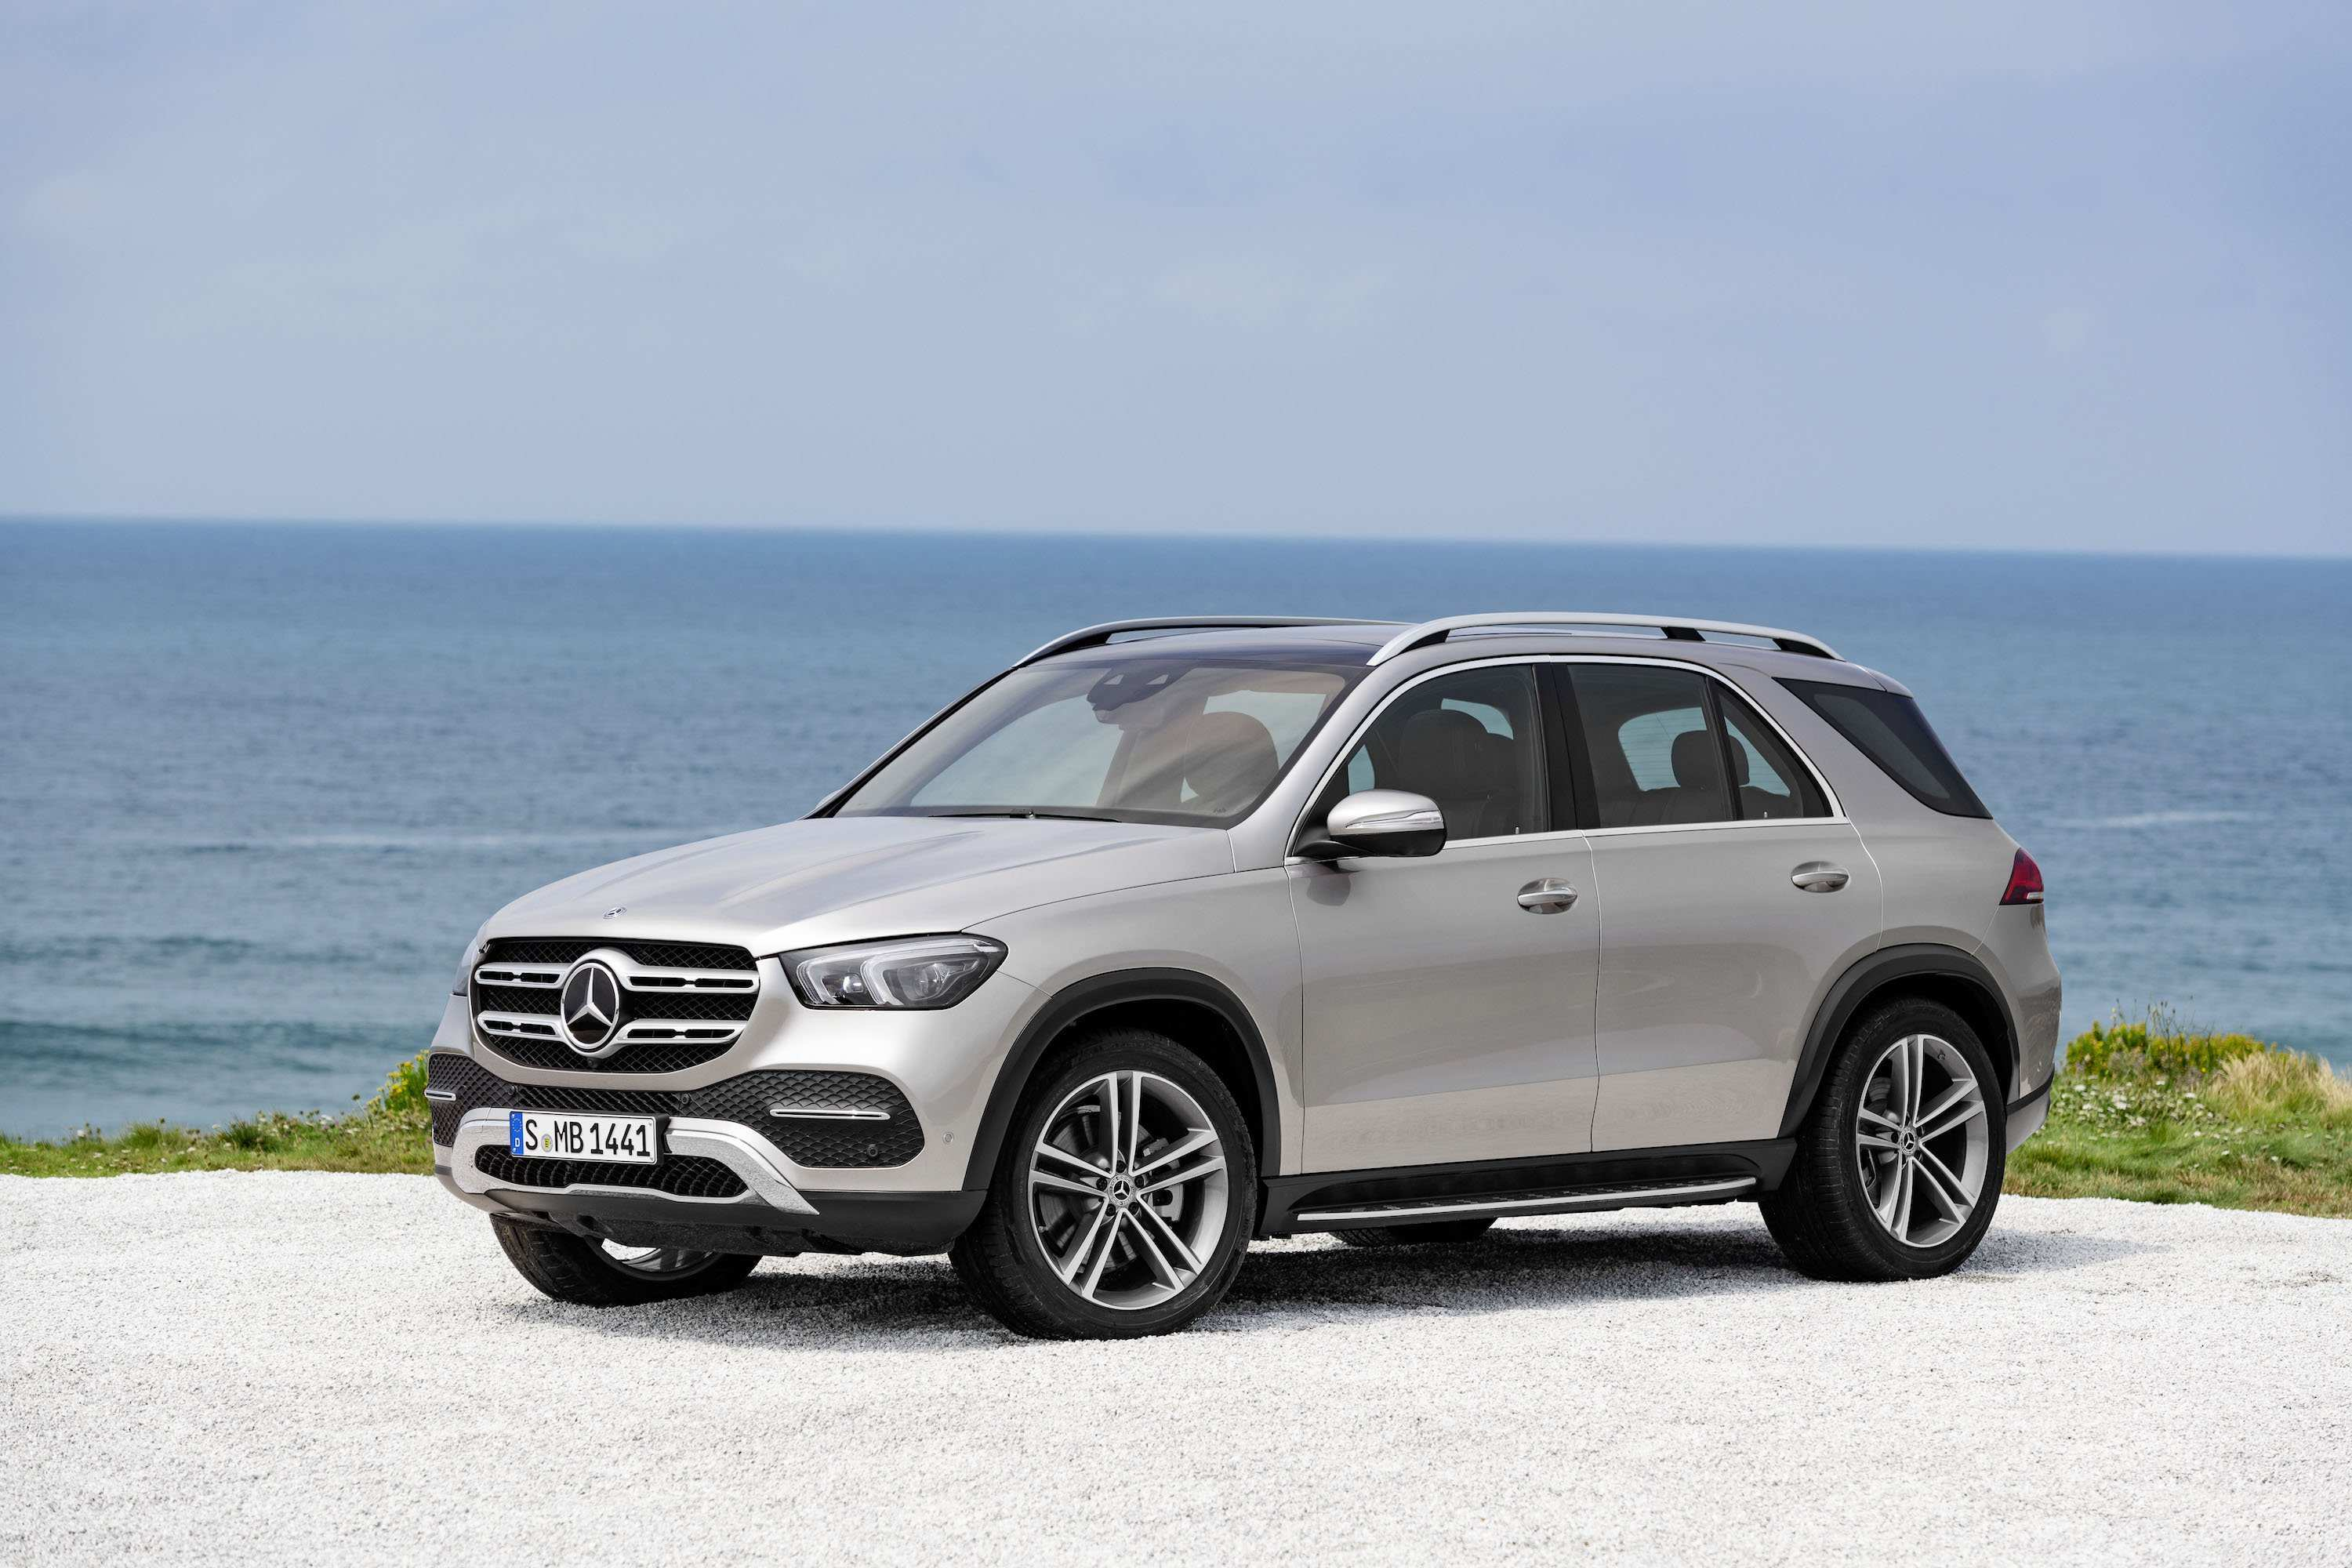 58 All New Mercedes Ml 2020 Configurations with Mercedes Ml 2020